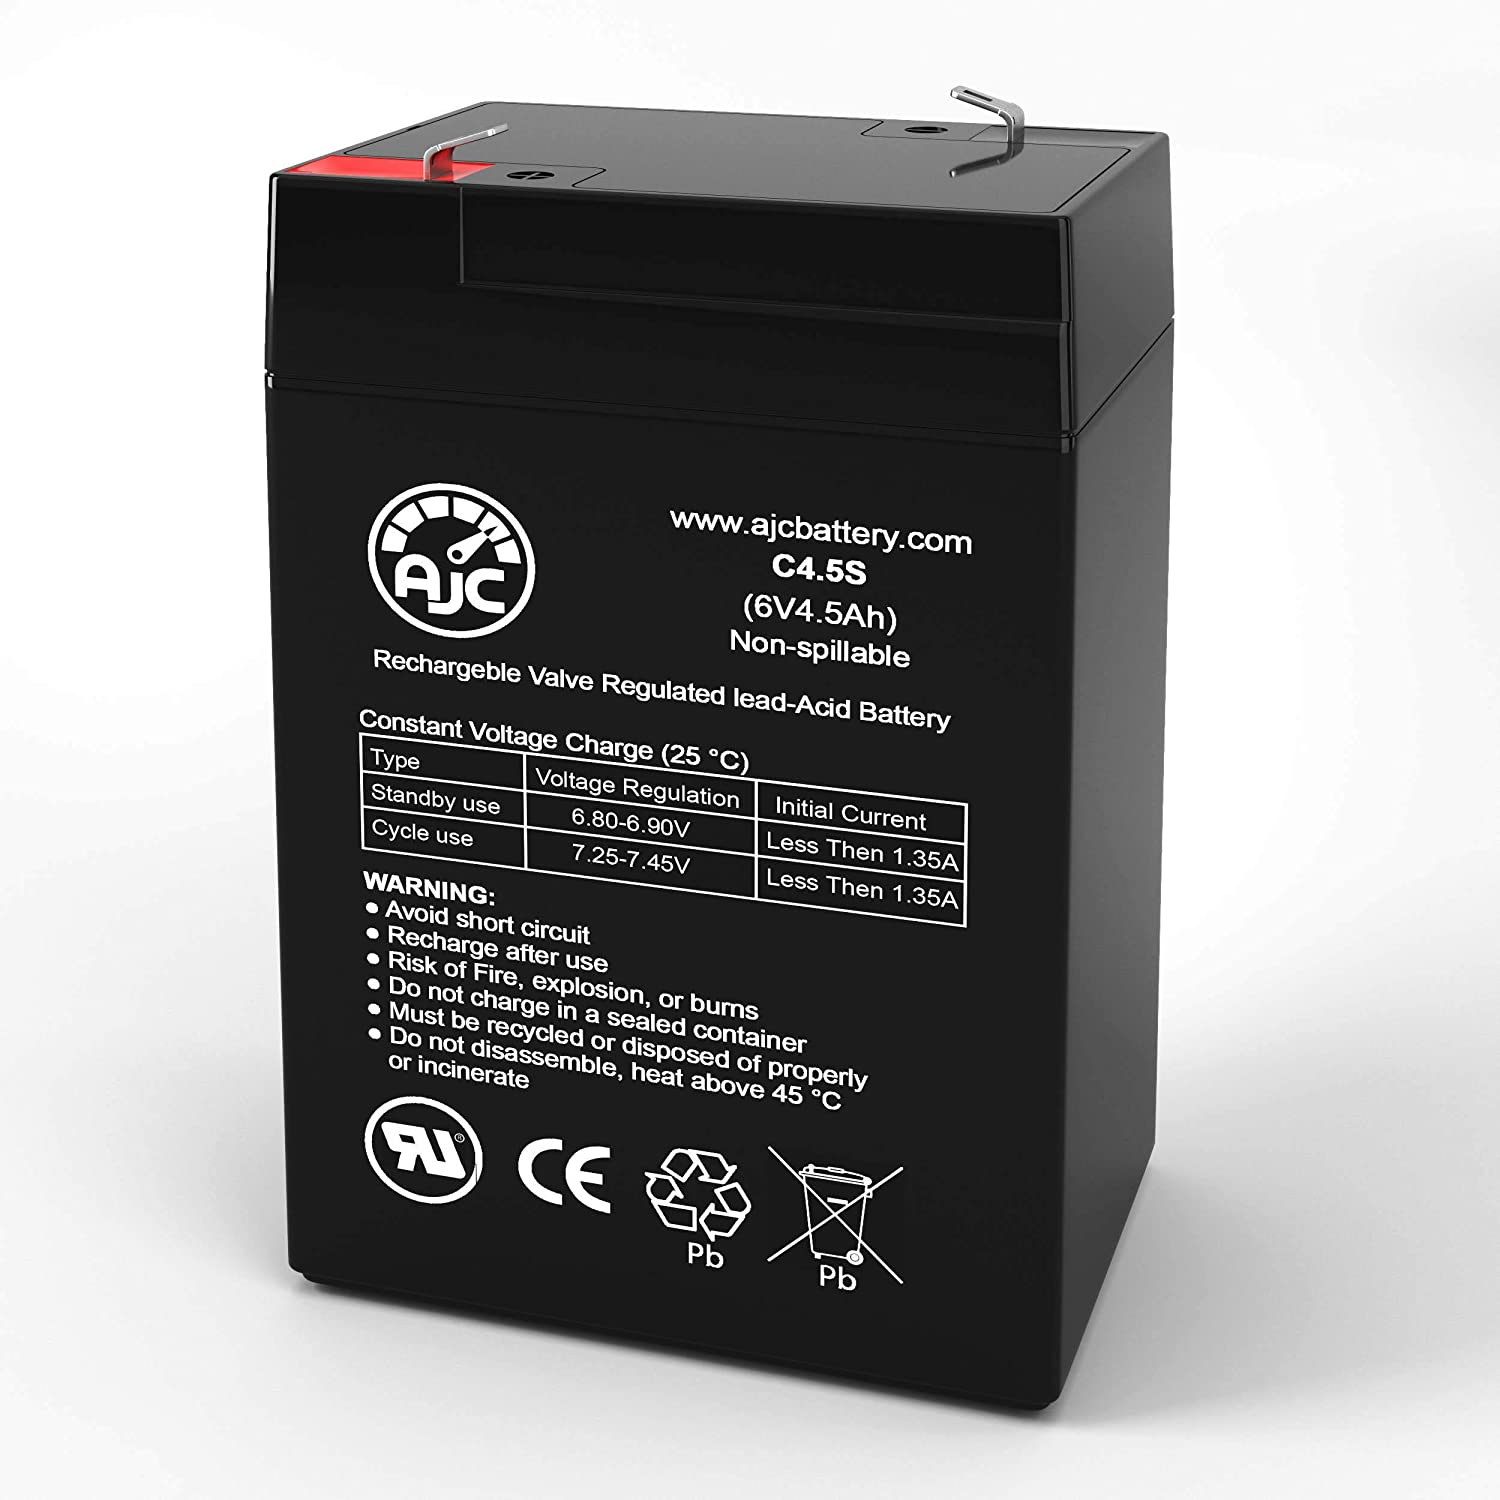 McPhilben/Daybright DBL6V5A1 6V 4.5Ah Emergency Light Battery - This is an AJC Brand Replacement